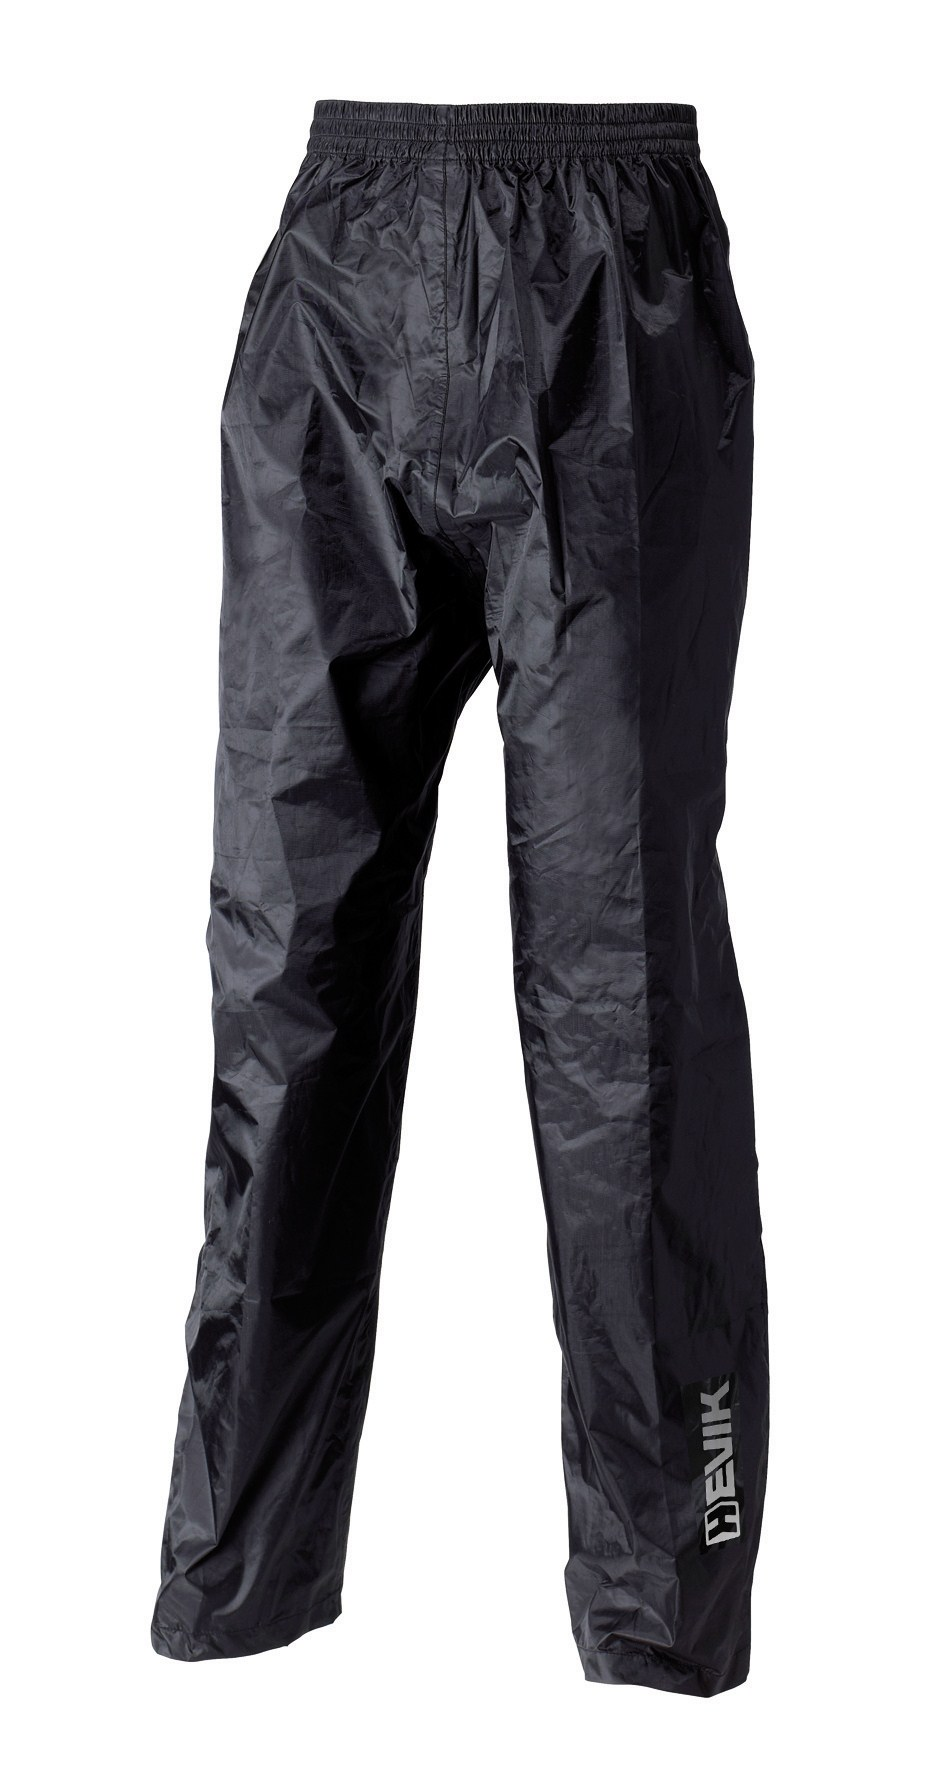 Hevik Dry Rain Pants Light Black Rain